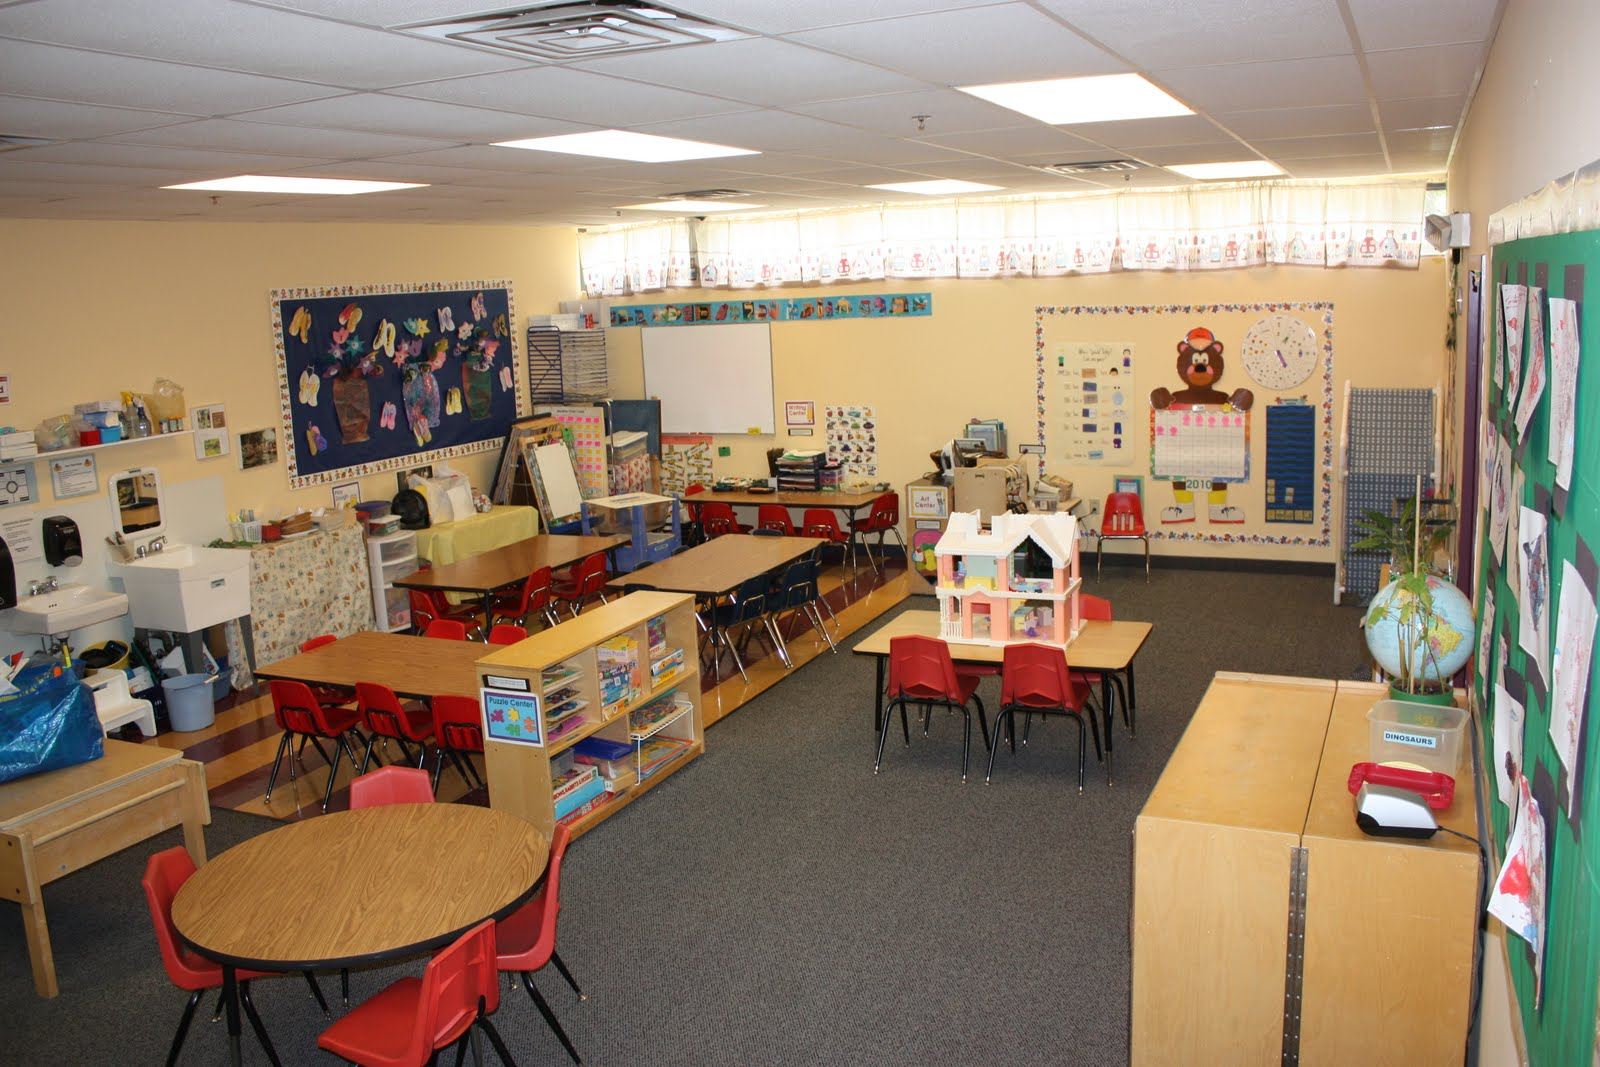 Classroom Design In Kindergarten ~ Home design letsroll preschool classroom